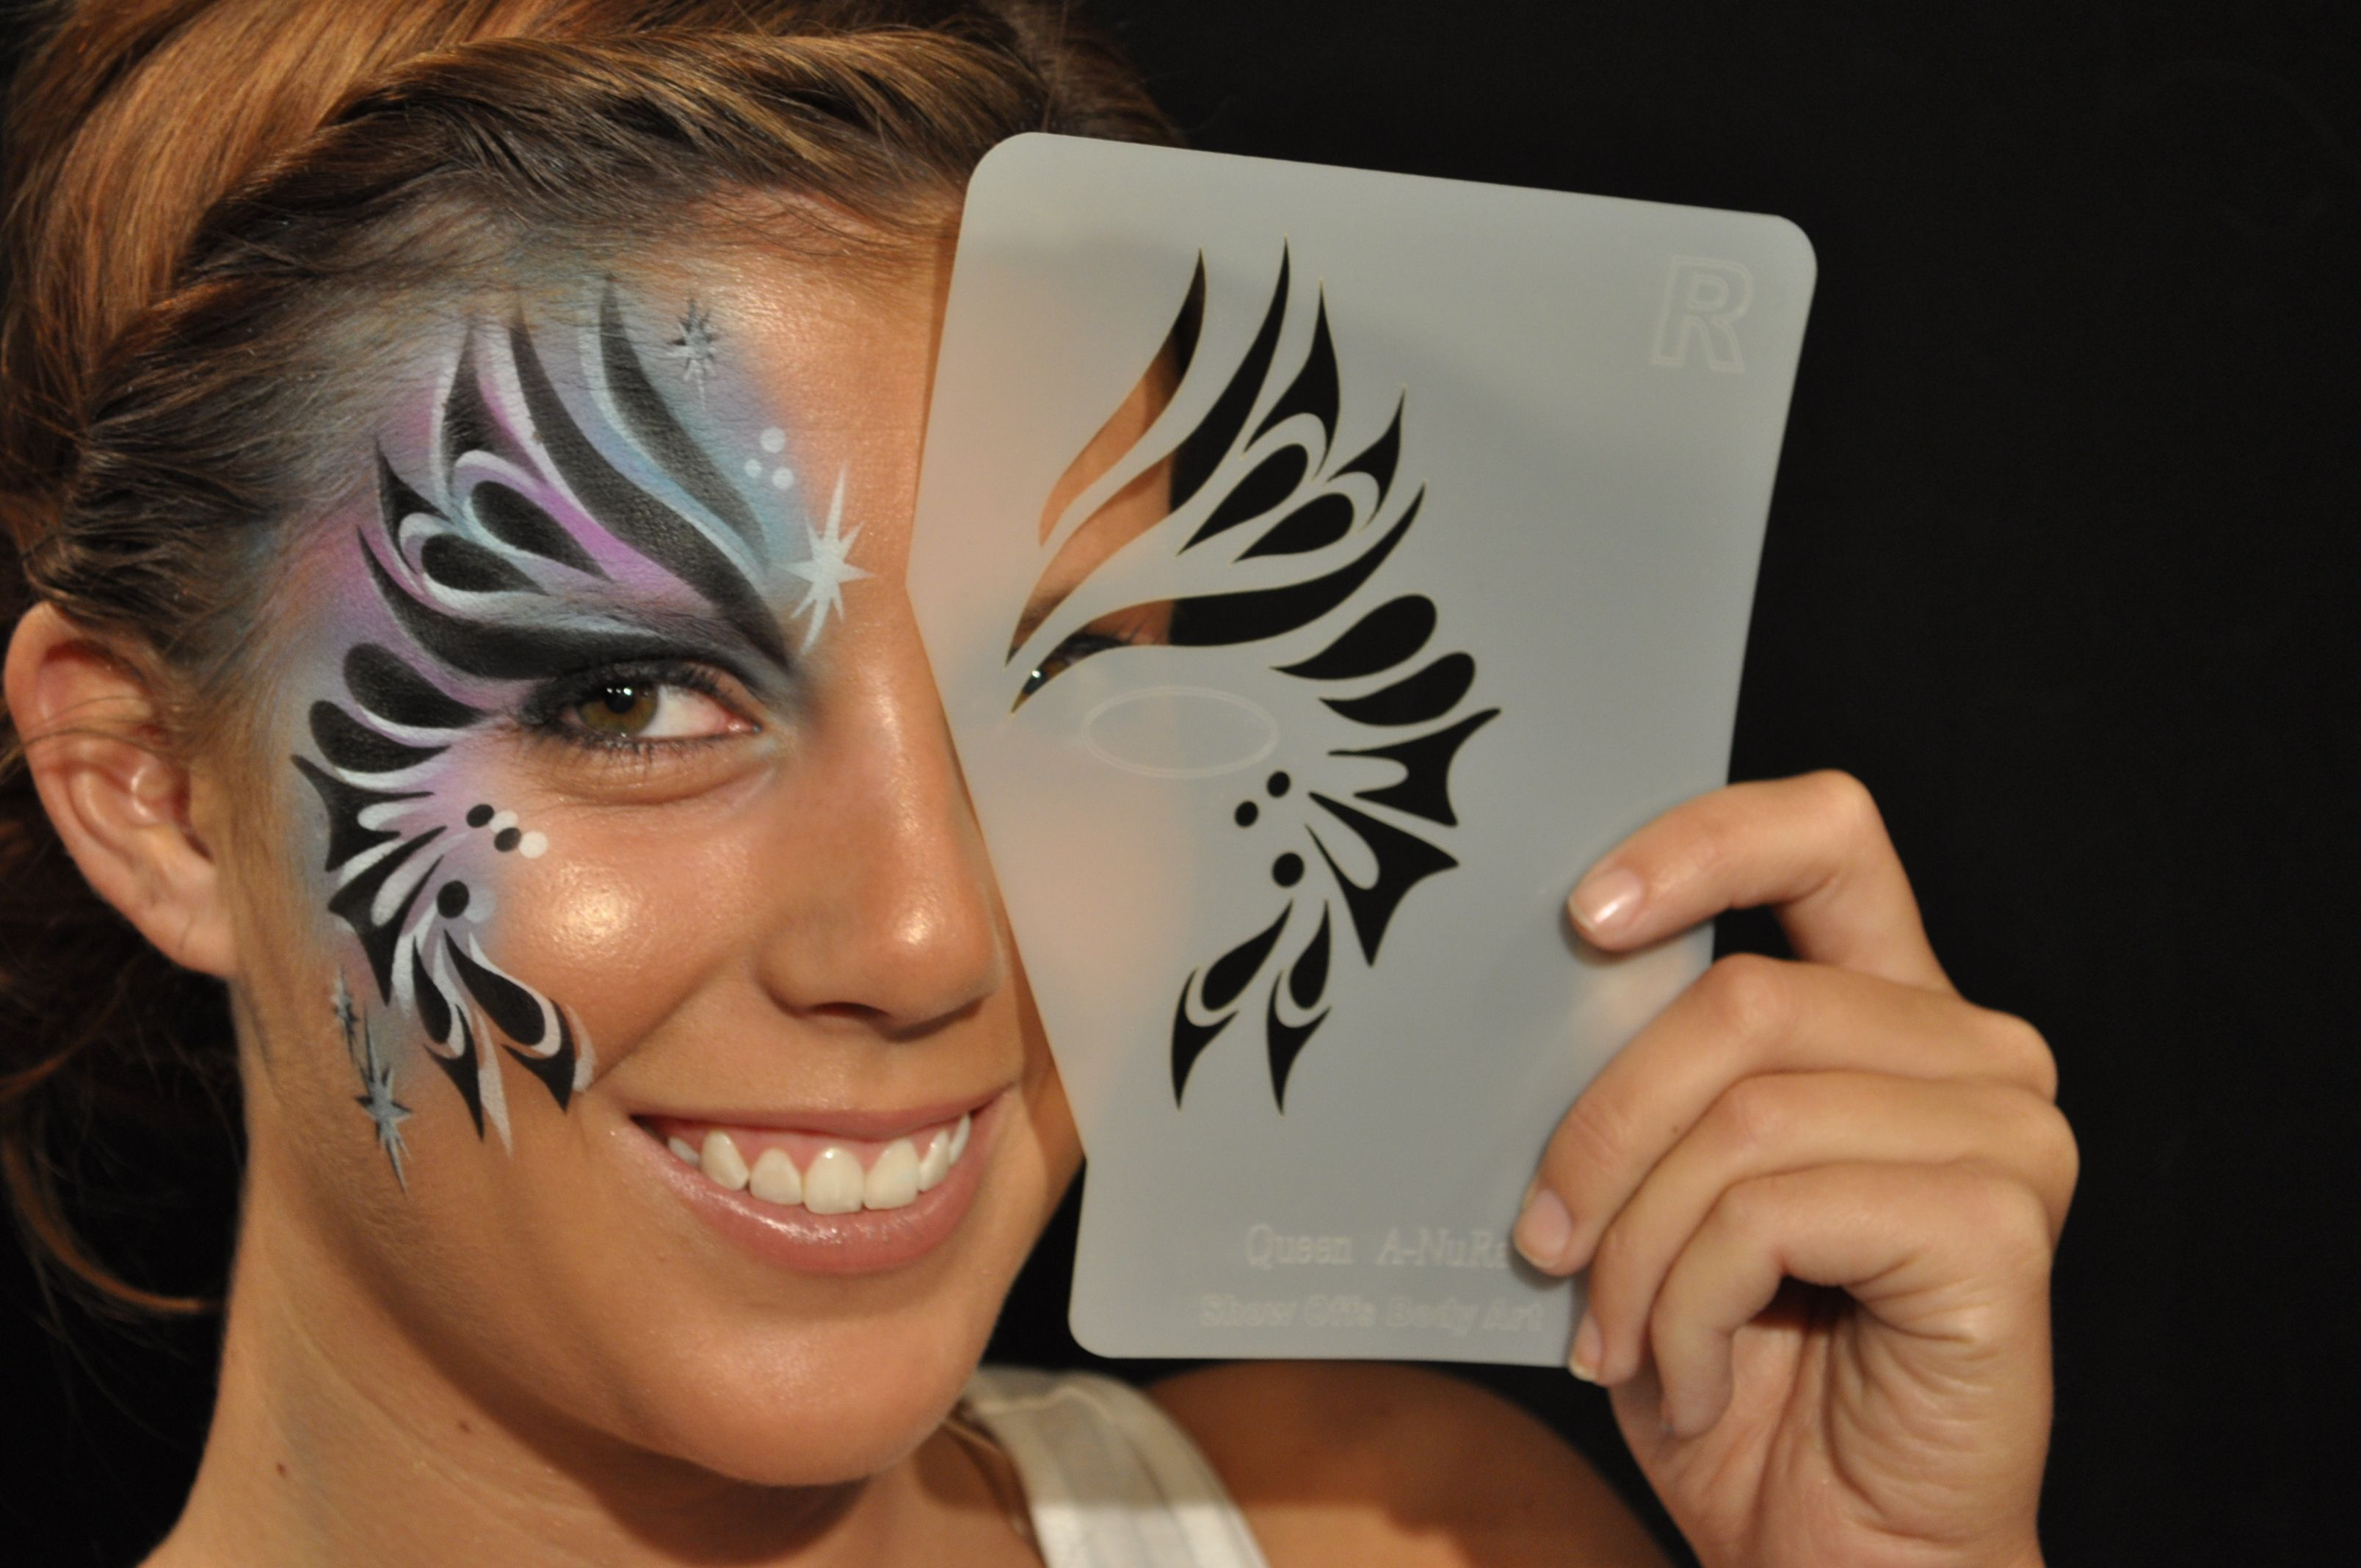 Stencileyes Face Painting Stencils Face Painting Stencils Face Painting Designs Face Painting